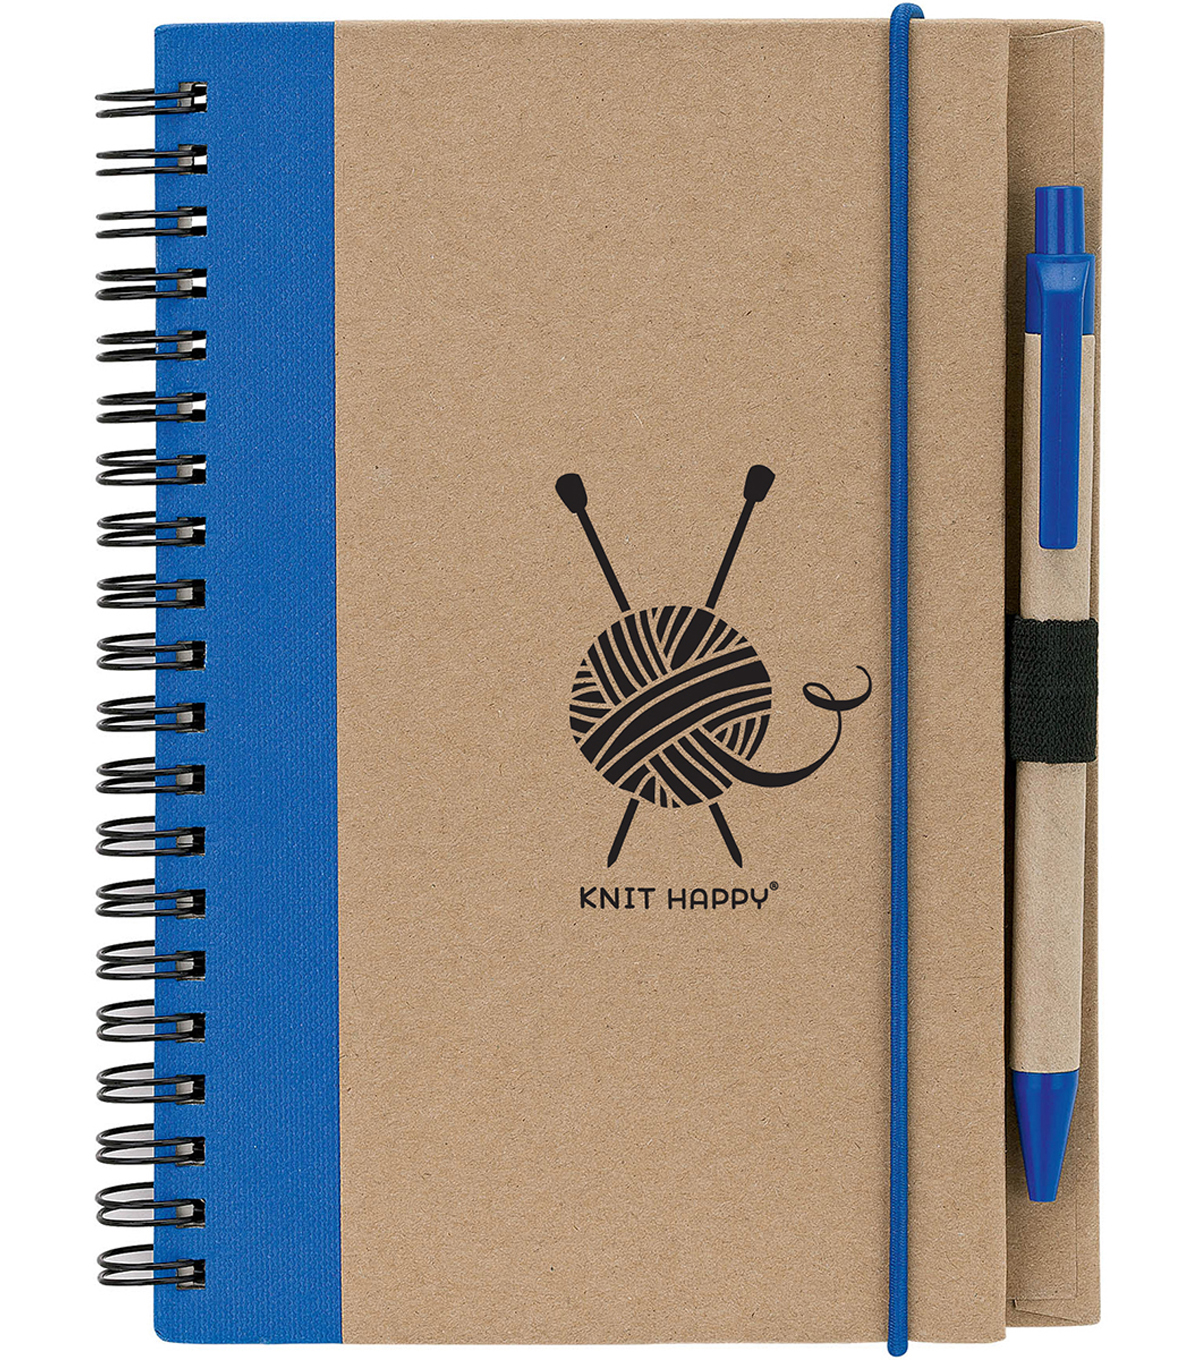 Knit Happy Eco Journal w/Pen-Blue